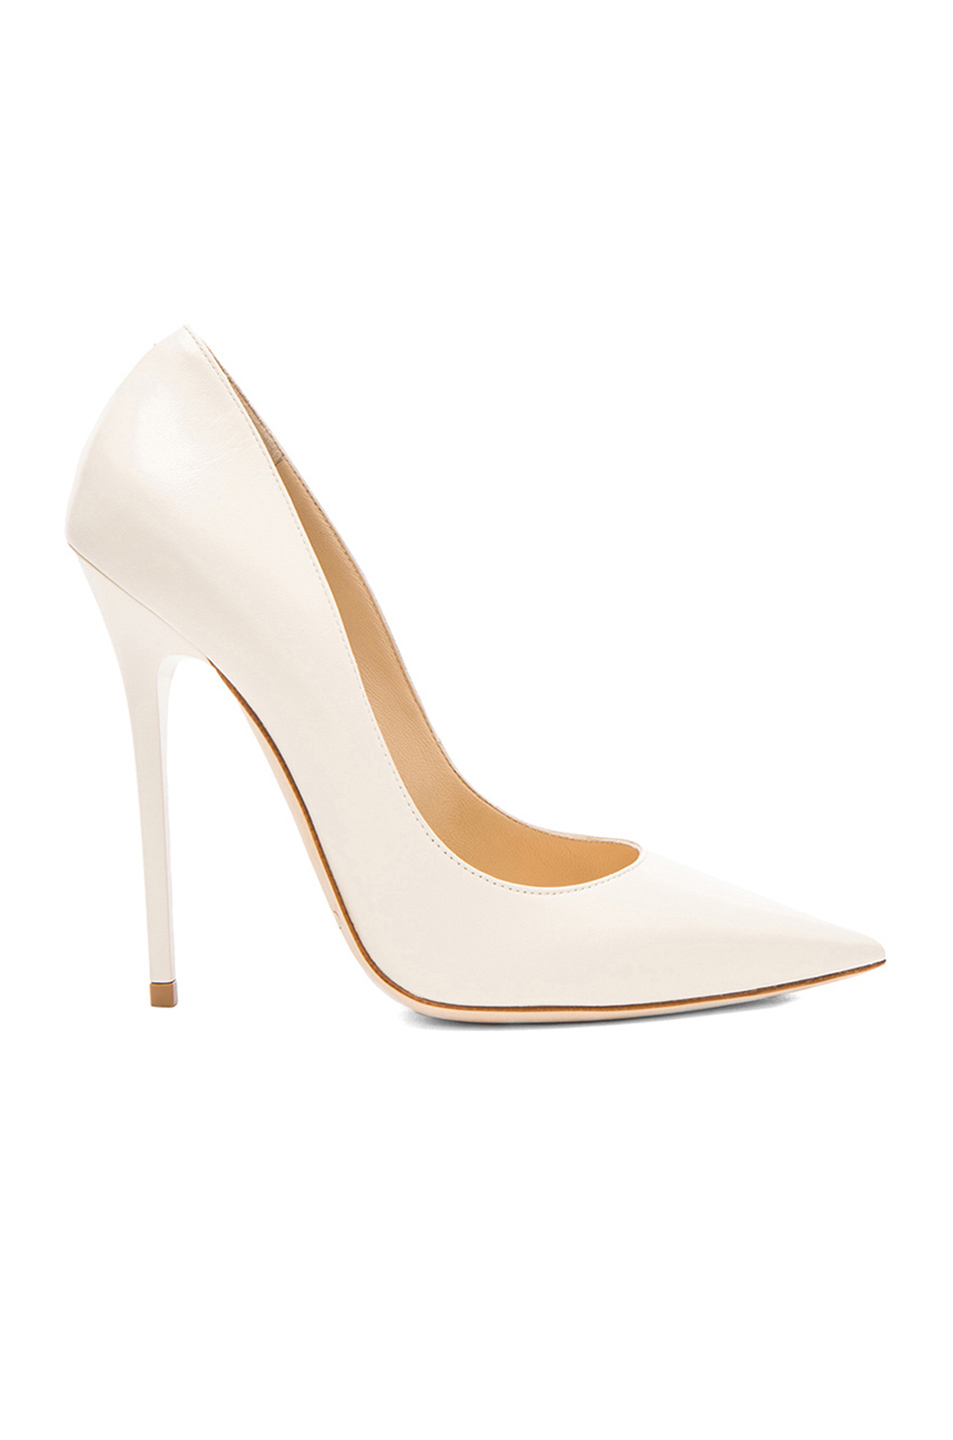 abfe9cdd3ce ... new style jimmy choo anouk leather pumps in off white fwrd fb8f3 d53e3